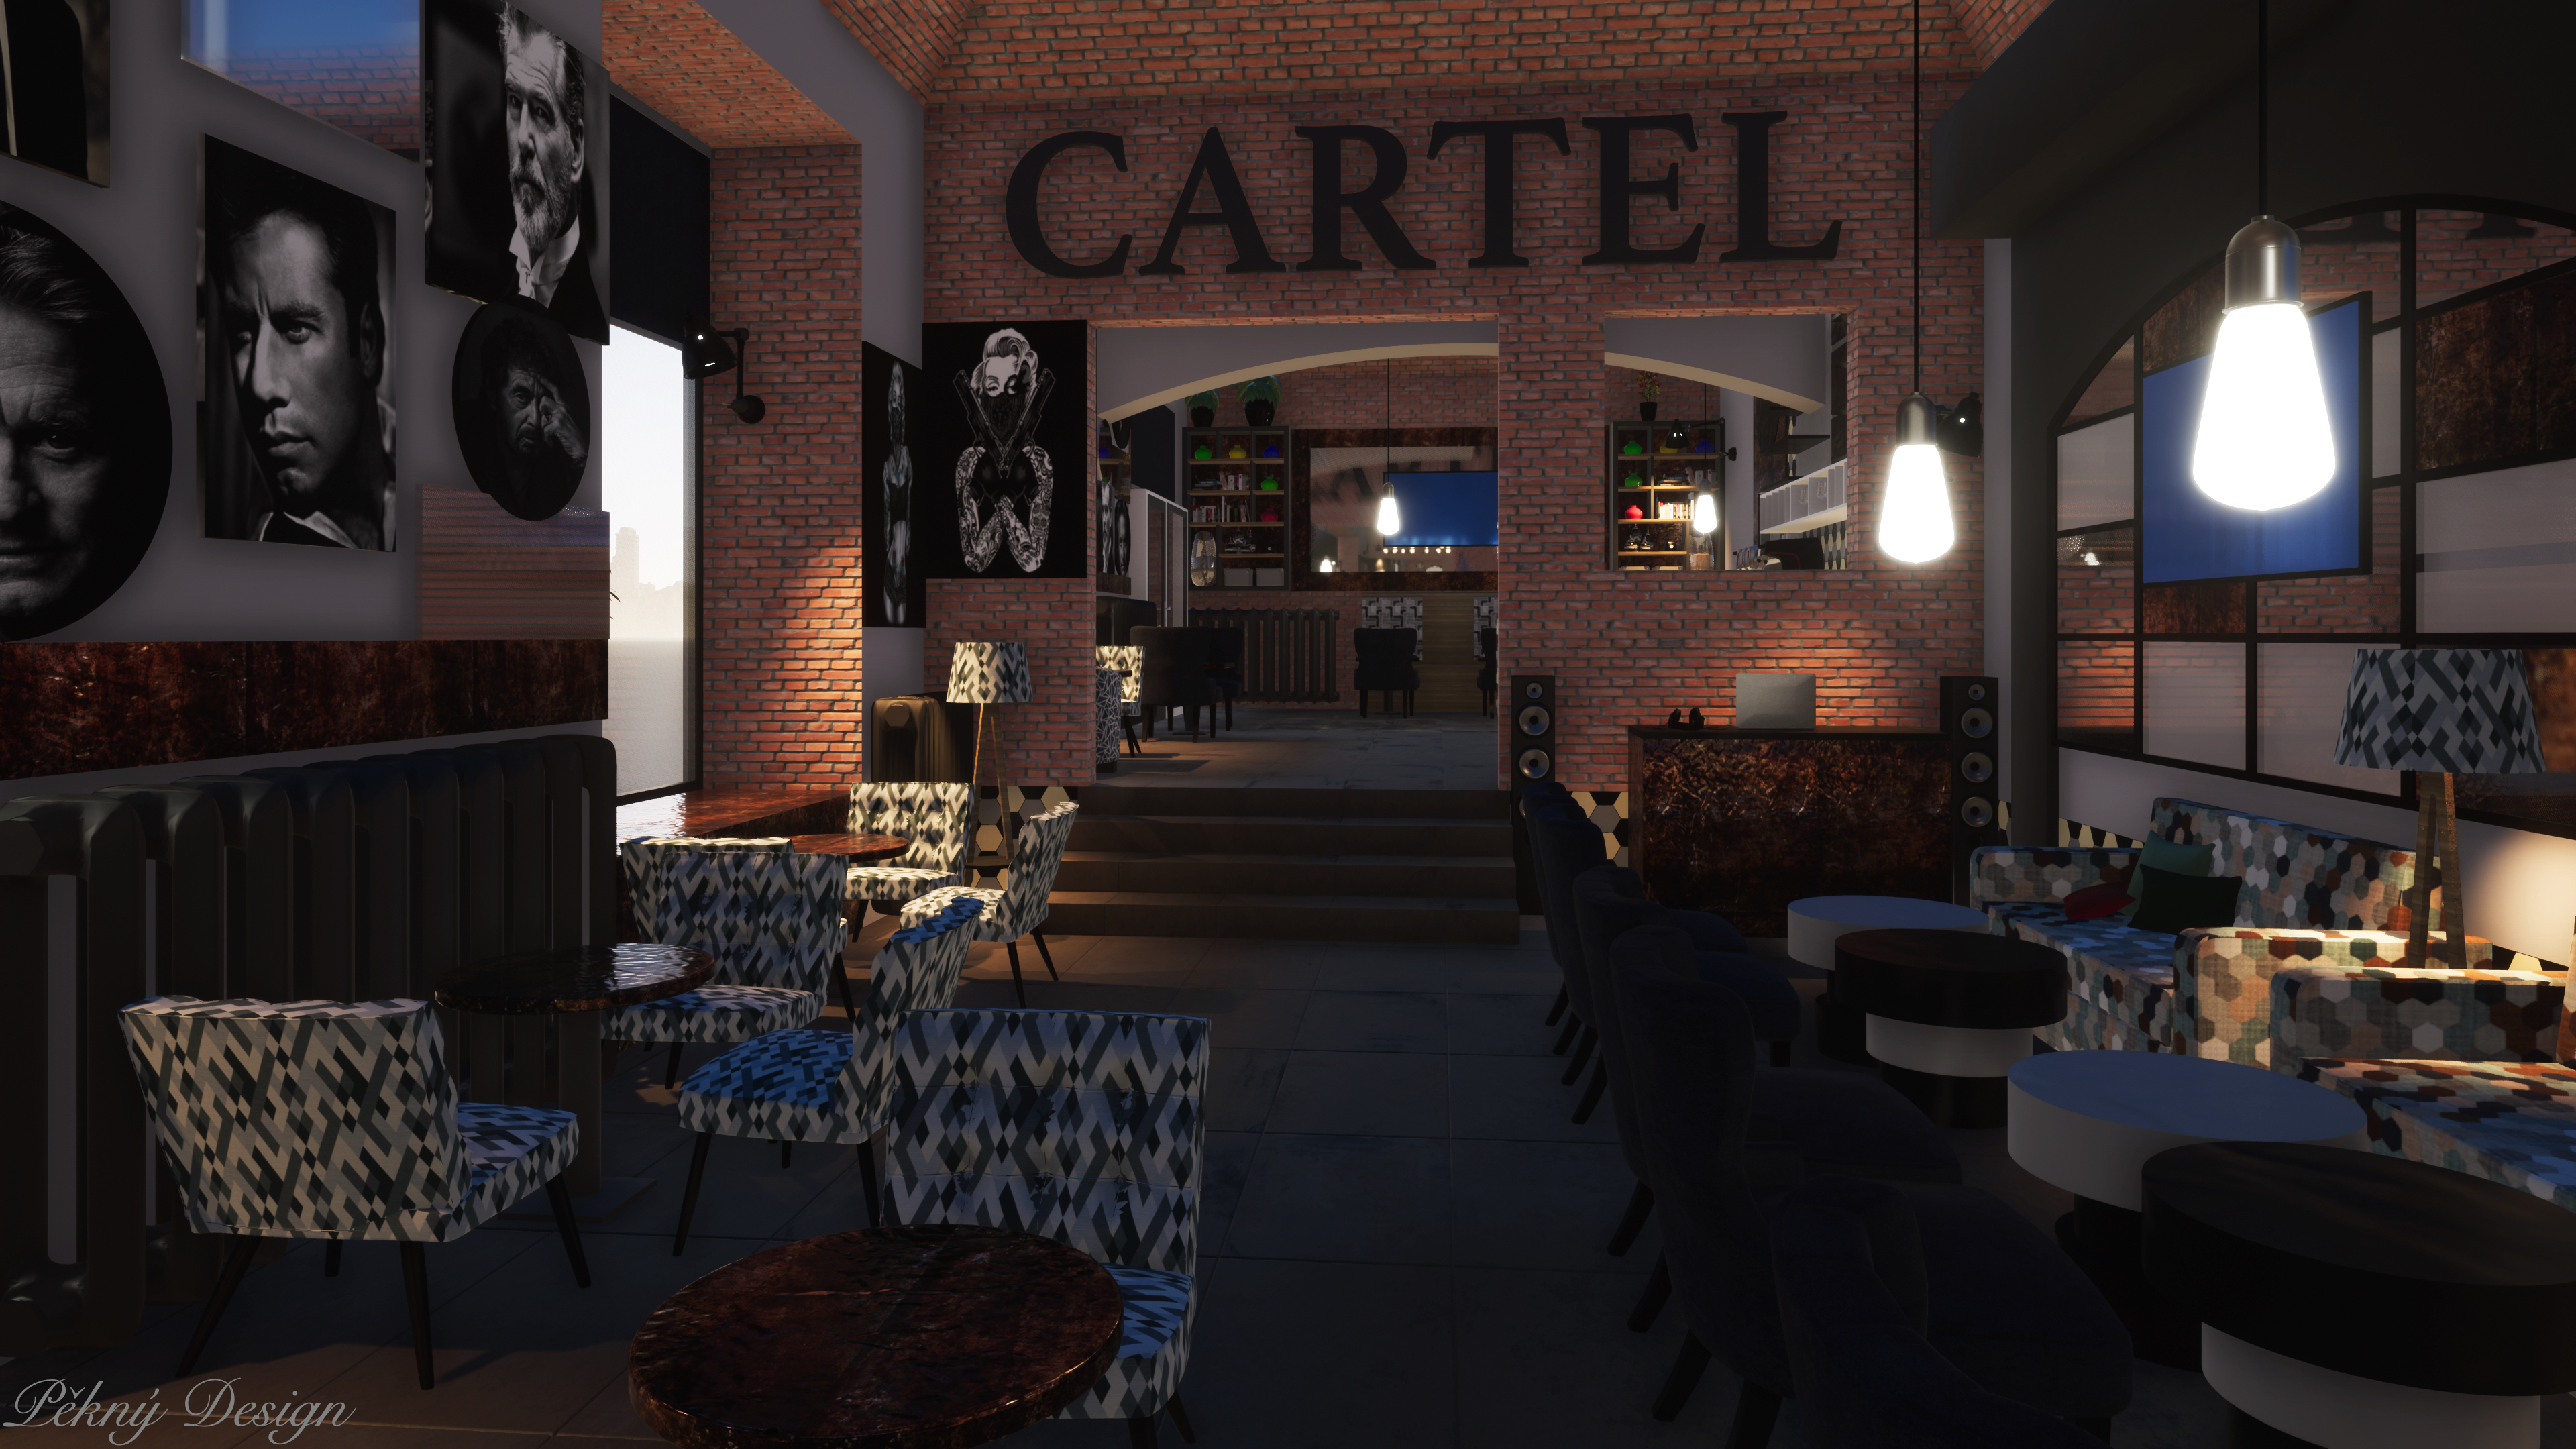 Cartel Lounge